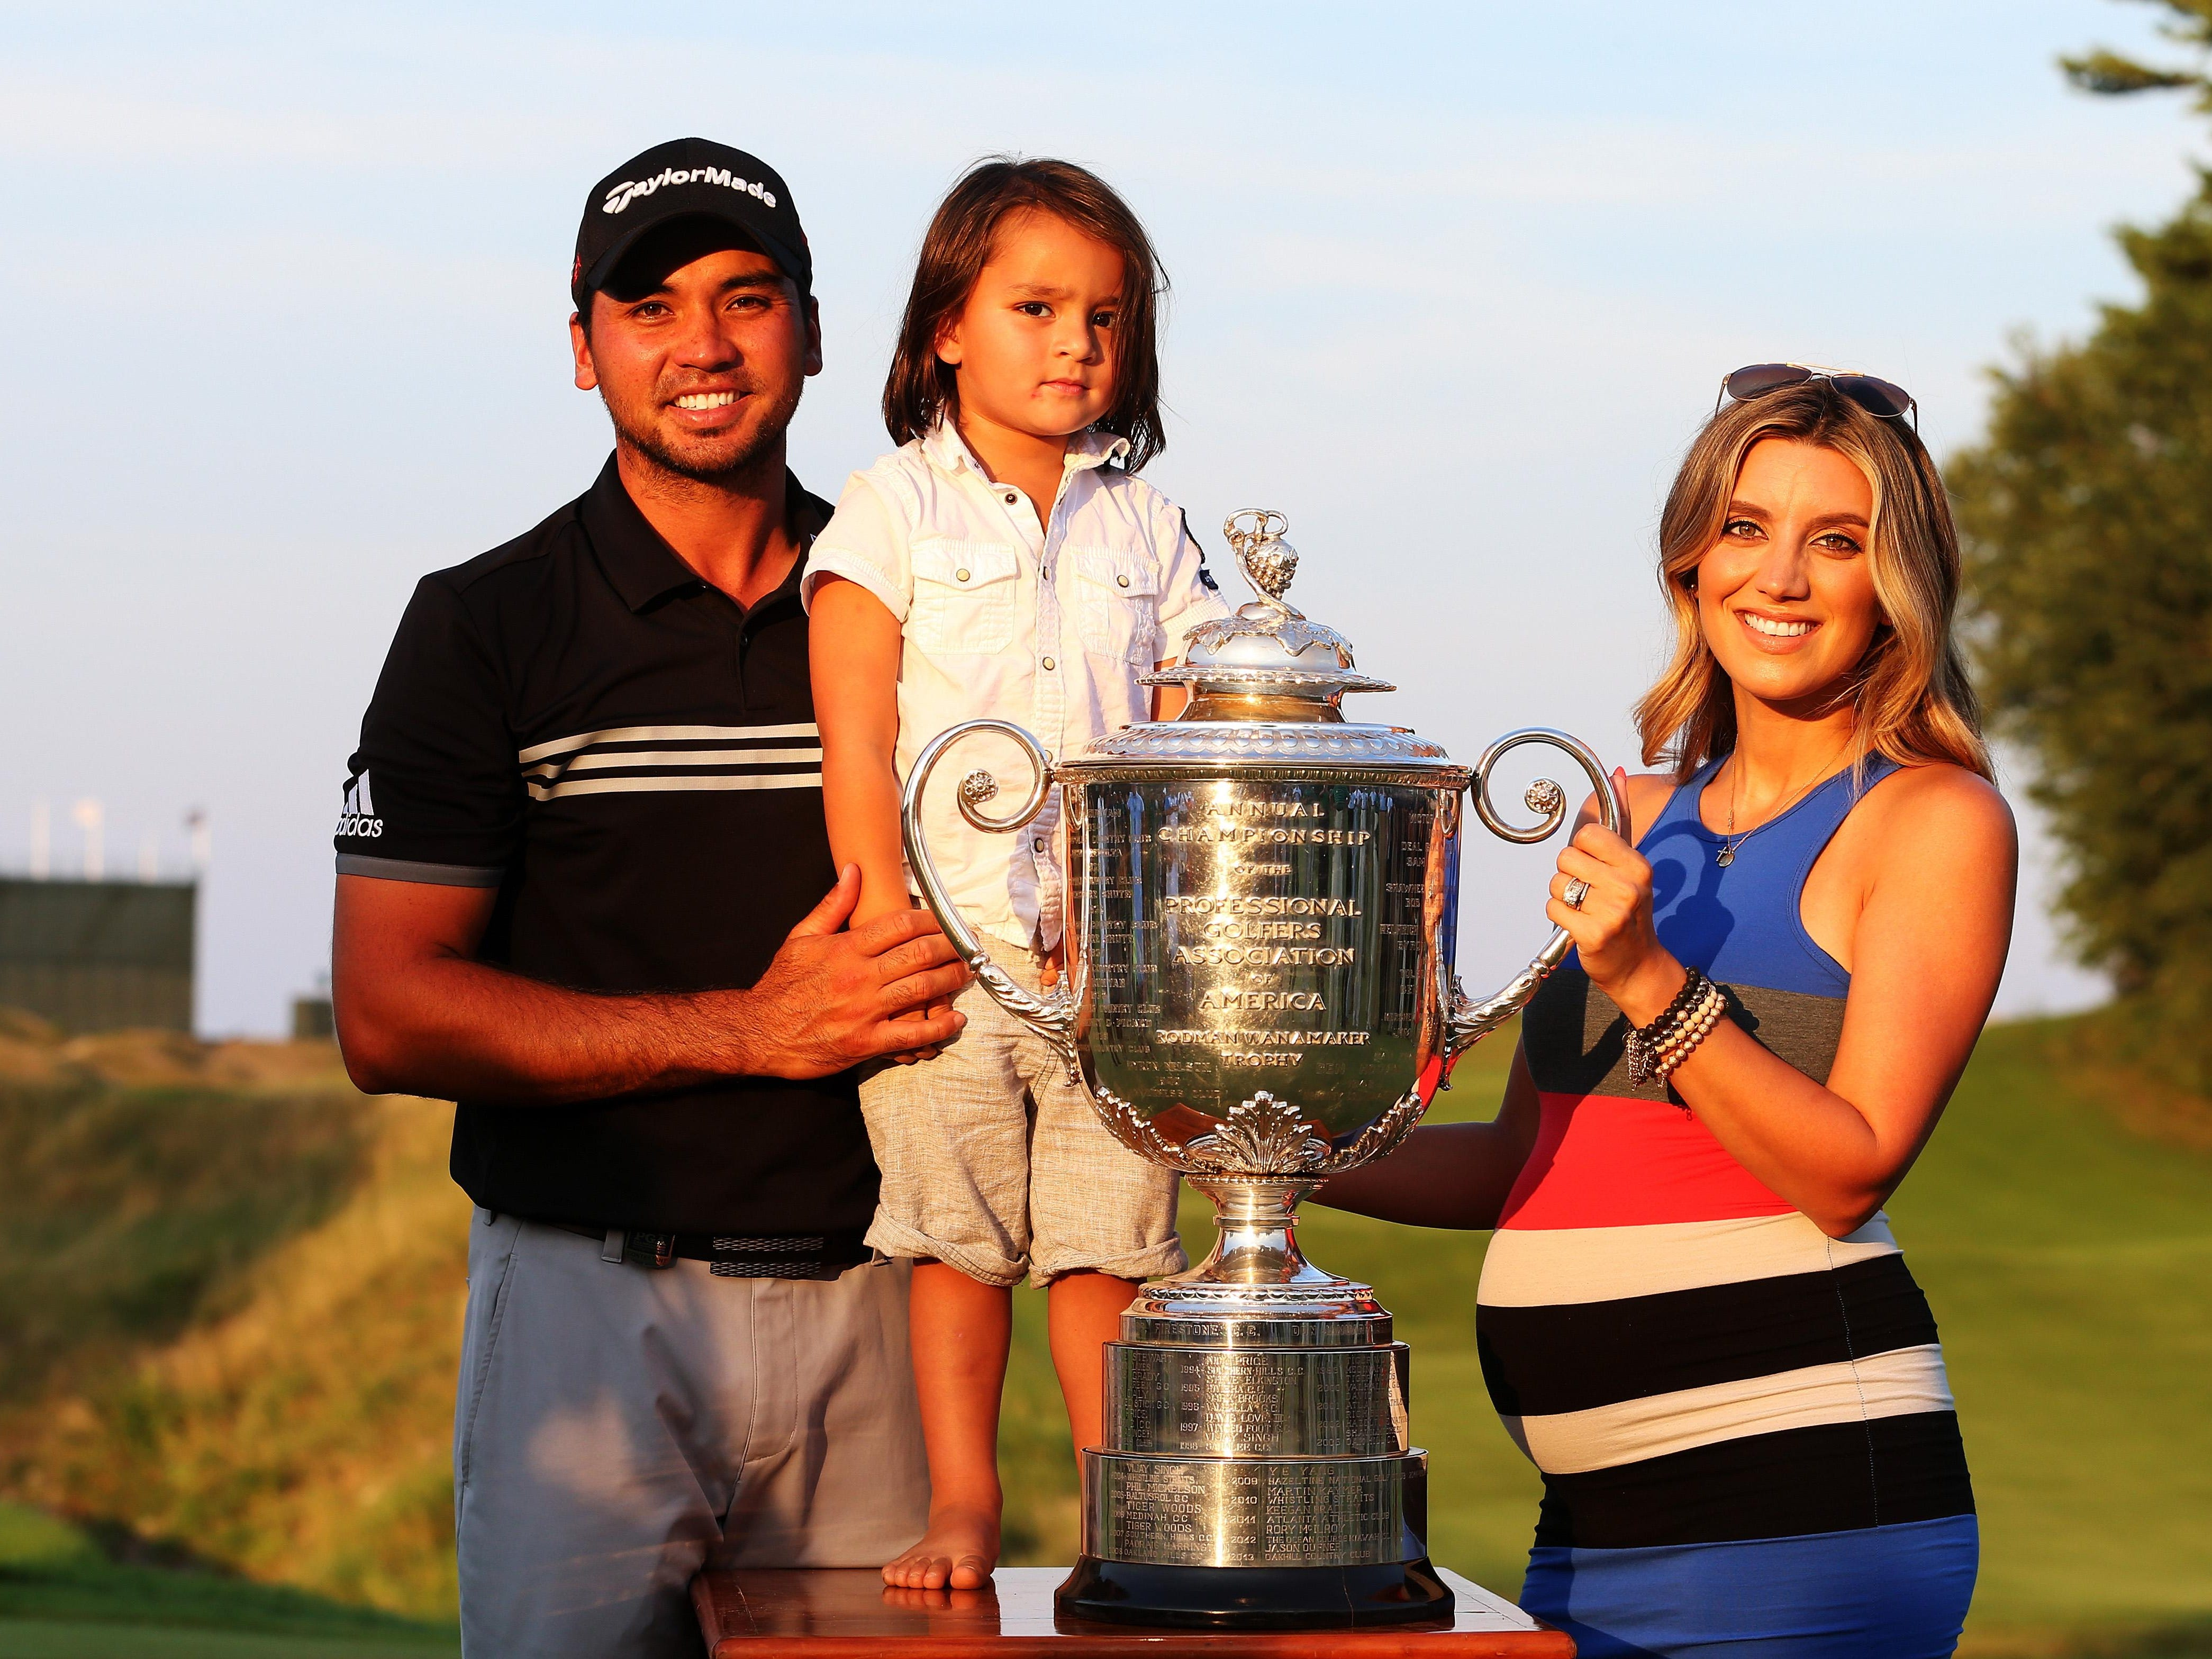 Jason Day of Australia poses with the Wanamaker trophy and his wife Ellie, a Lucas native, and son Dash after winning the 2015 PGA Championship with a score of 20-under par at Whistling Straits on August 16, 2015 in Sheboygan, Wisconsin.